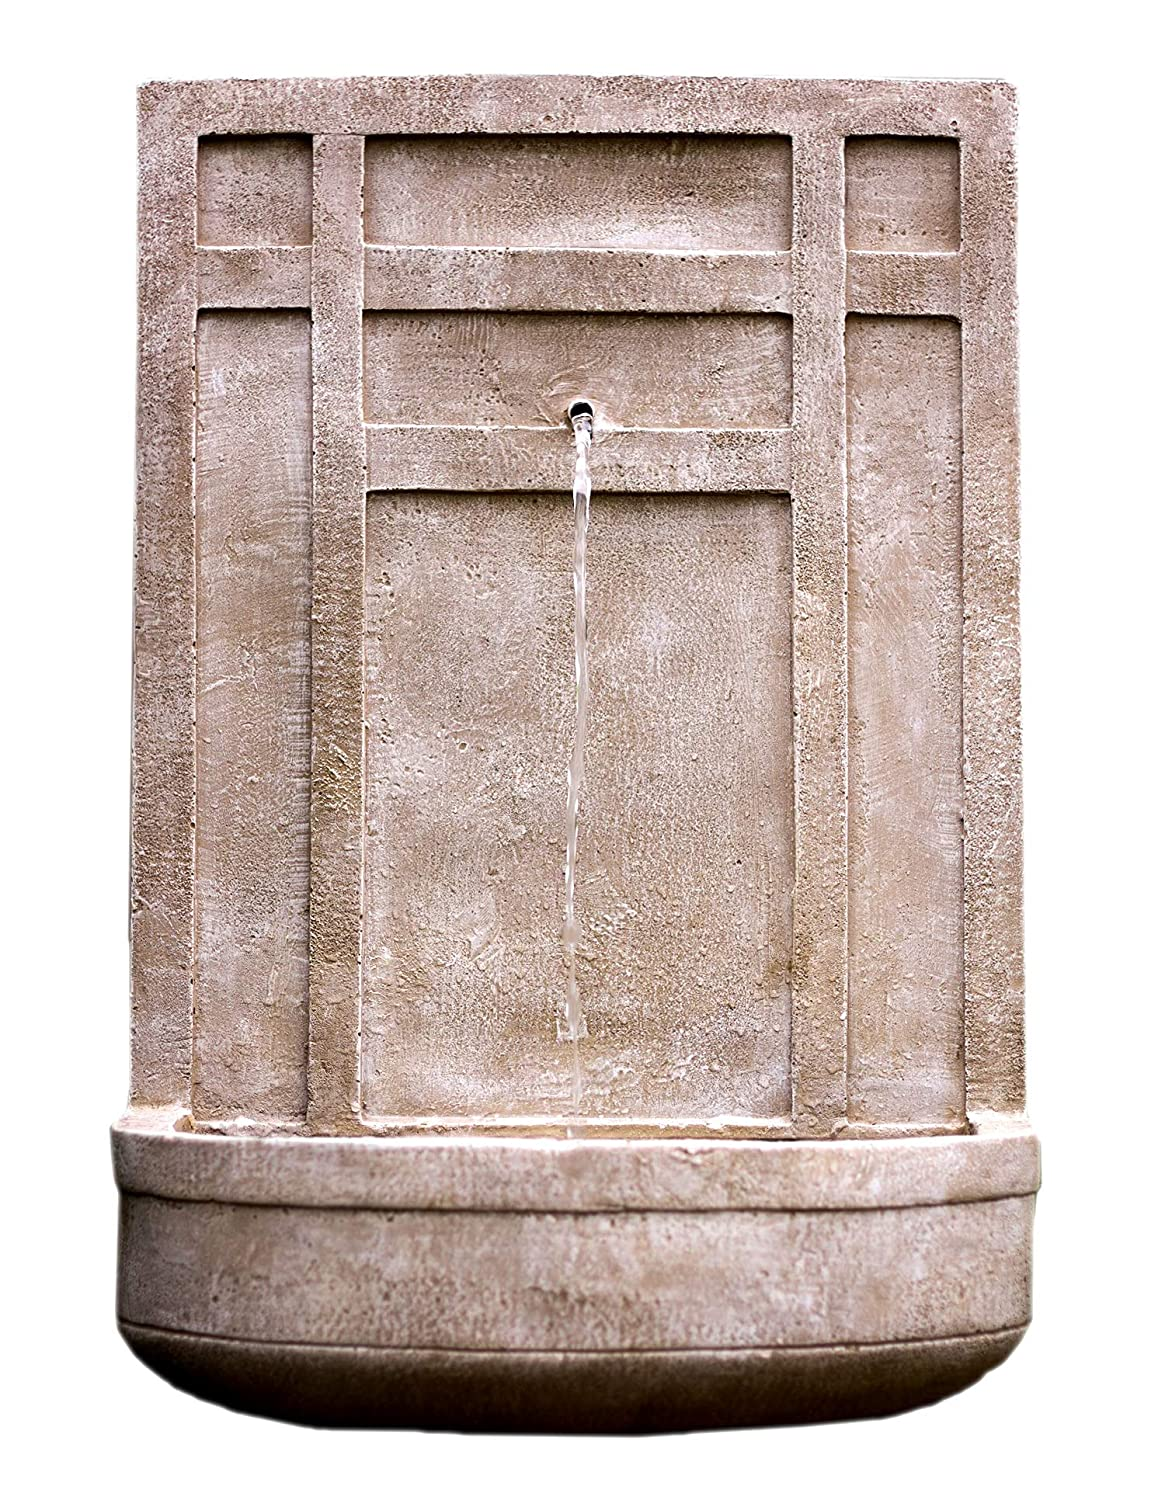 The Sicily - Outdoor Wall Fountain in Parchment Beige - Water Feature for Outdoor Living Space and Garden Enhancement Harmony Fountains HF-W007-P